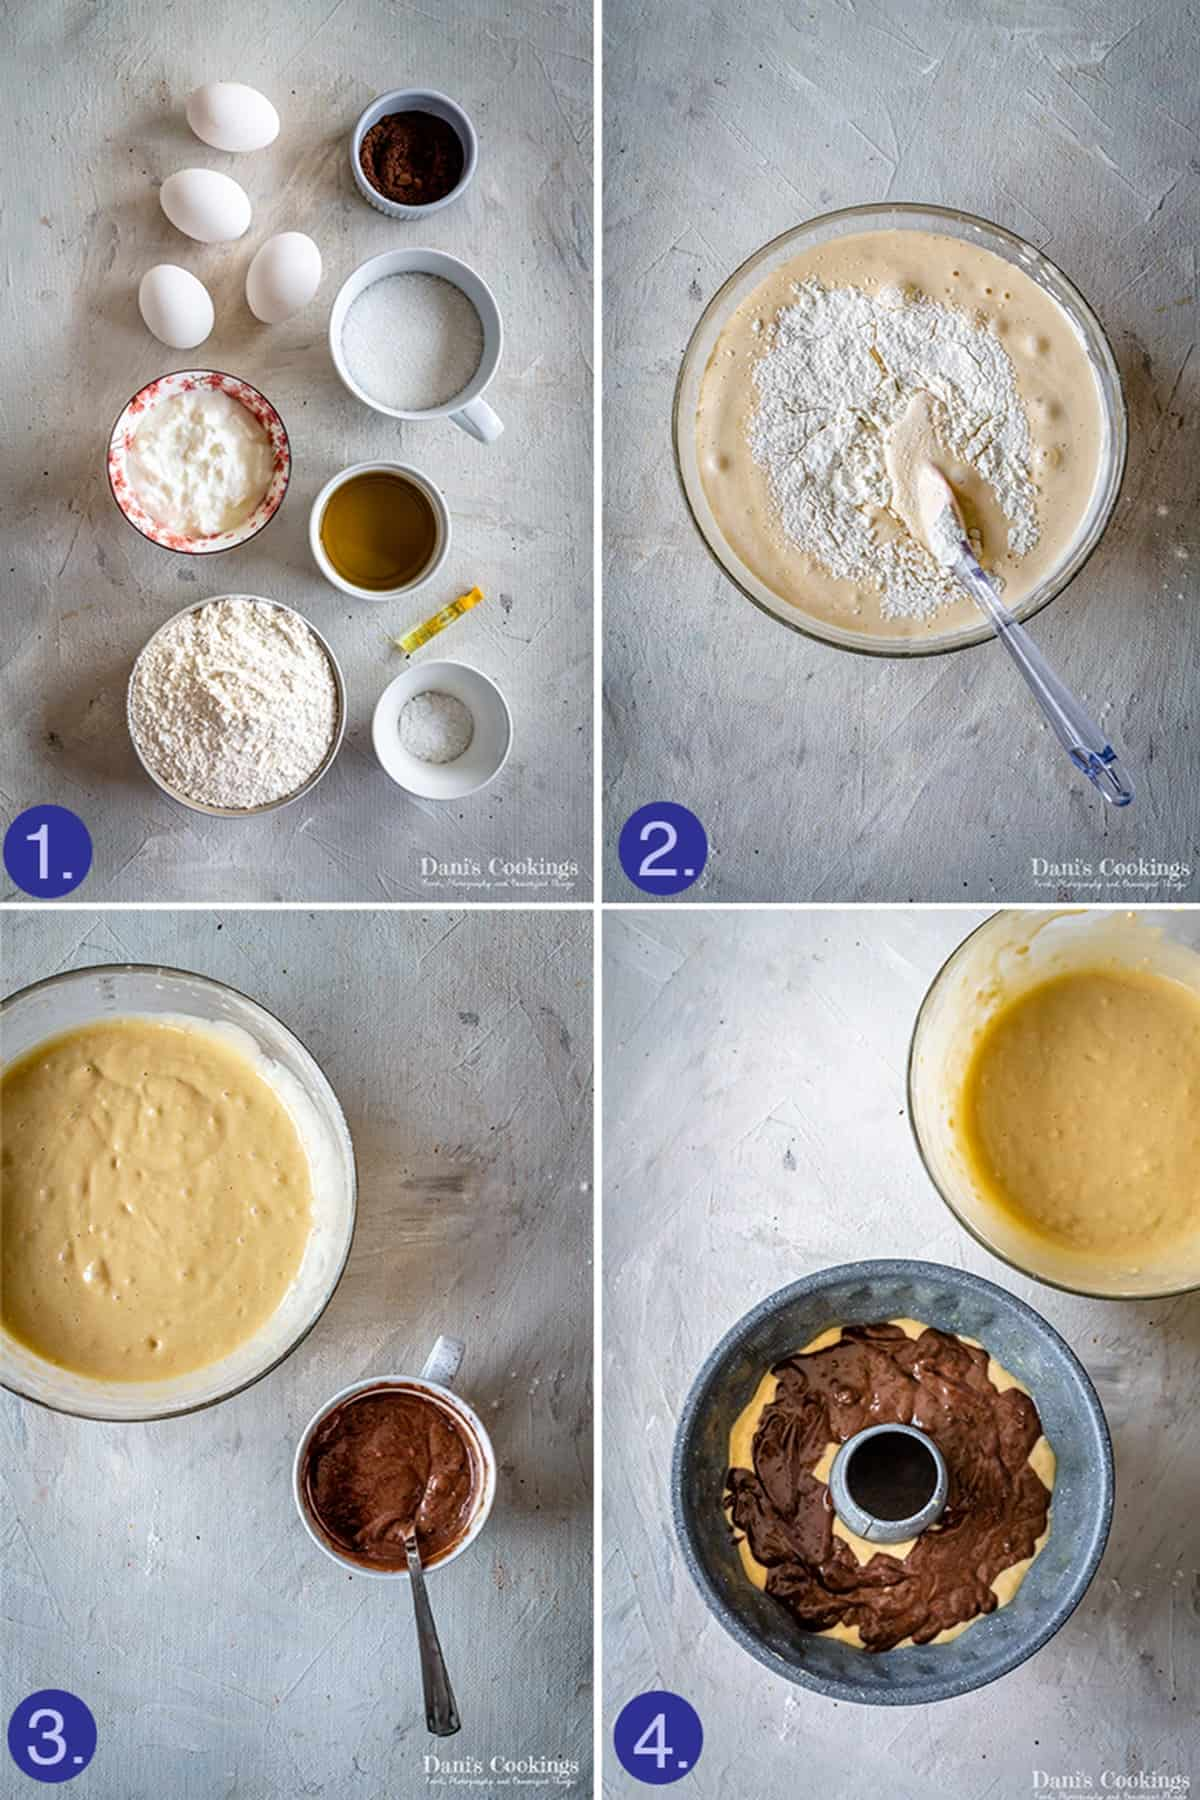 ingredients and 3 steps to make the bundt cake